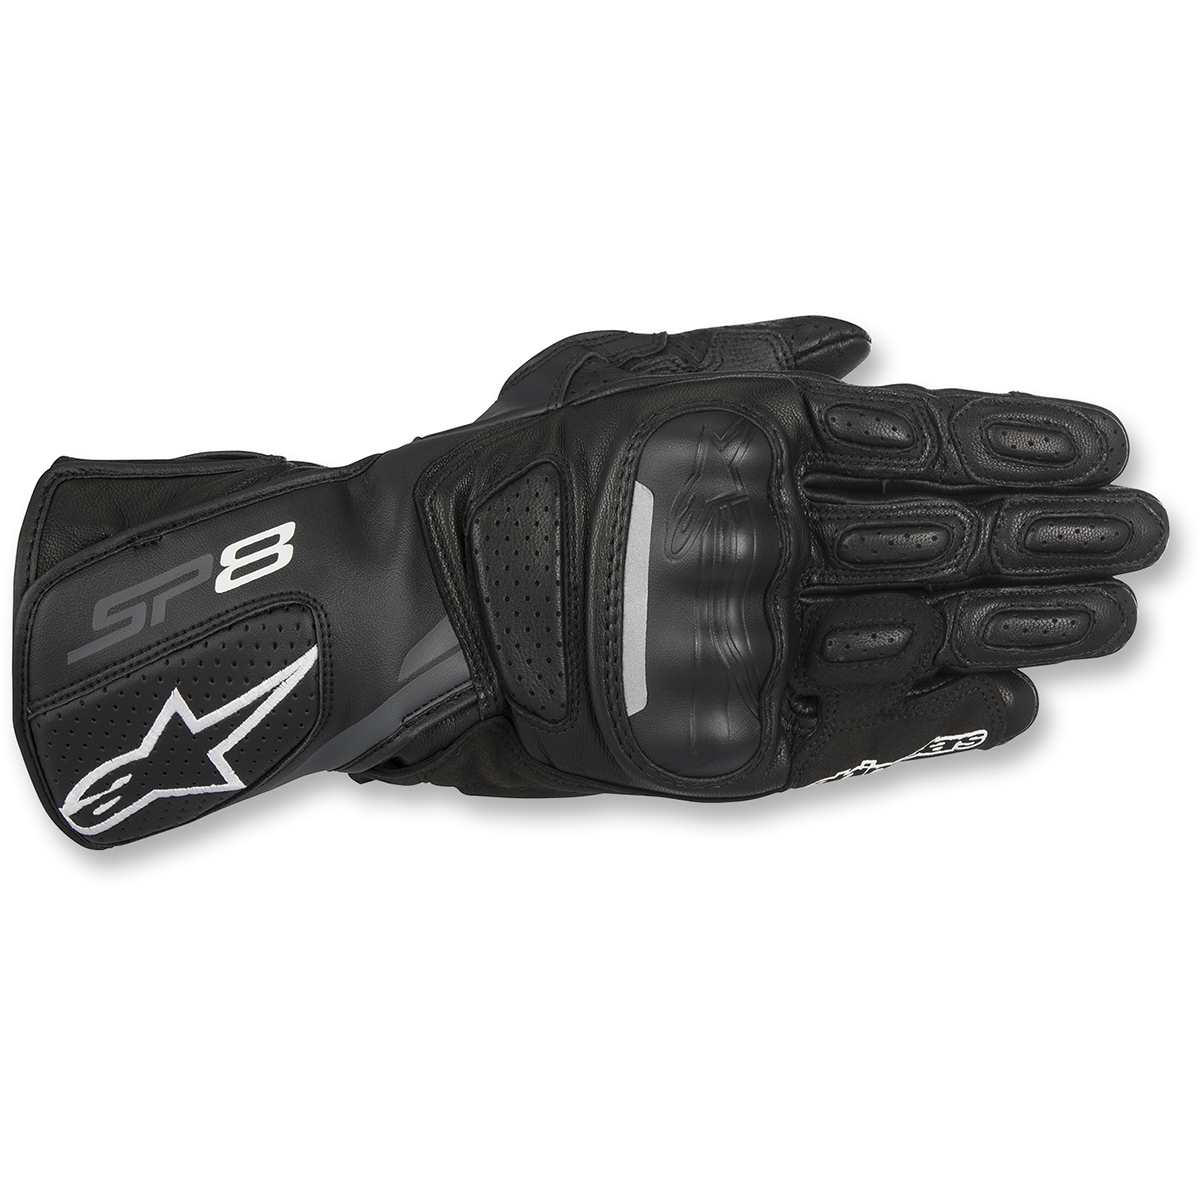 SP-8 V2 Gloves